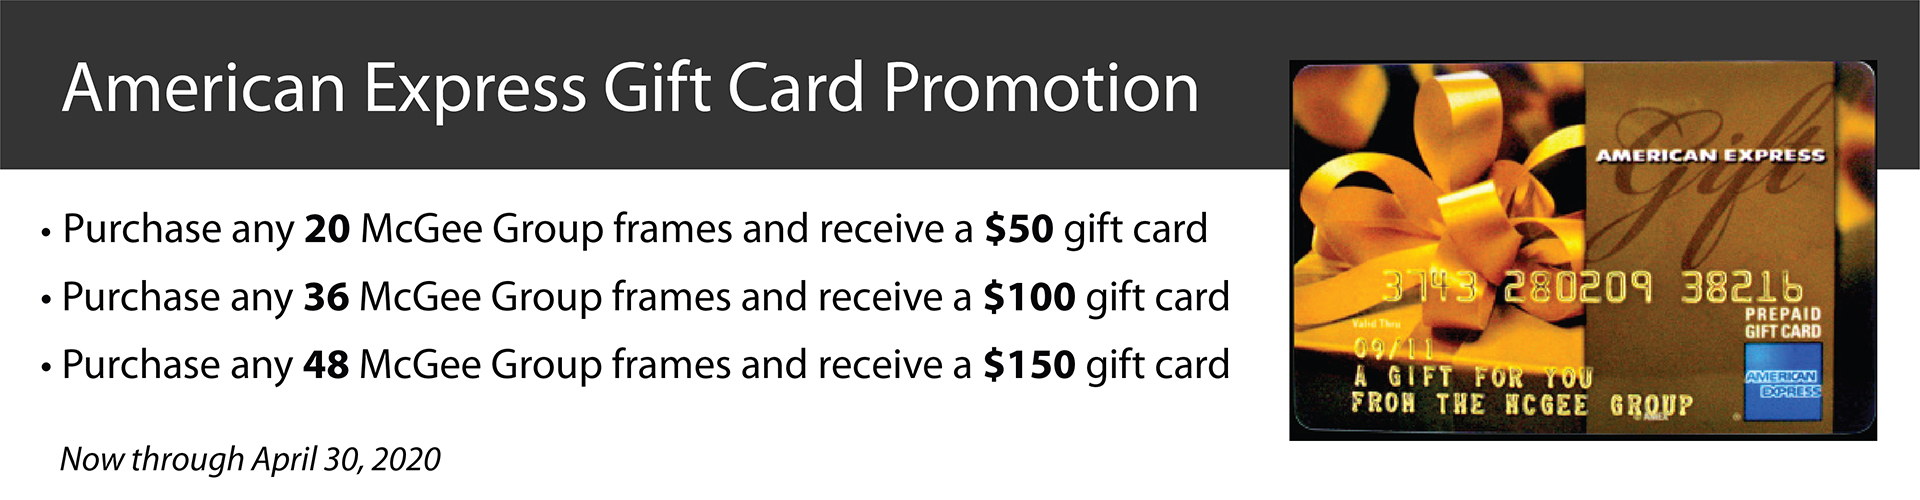 American Express Gift Card Promotion